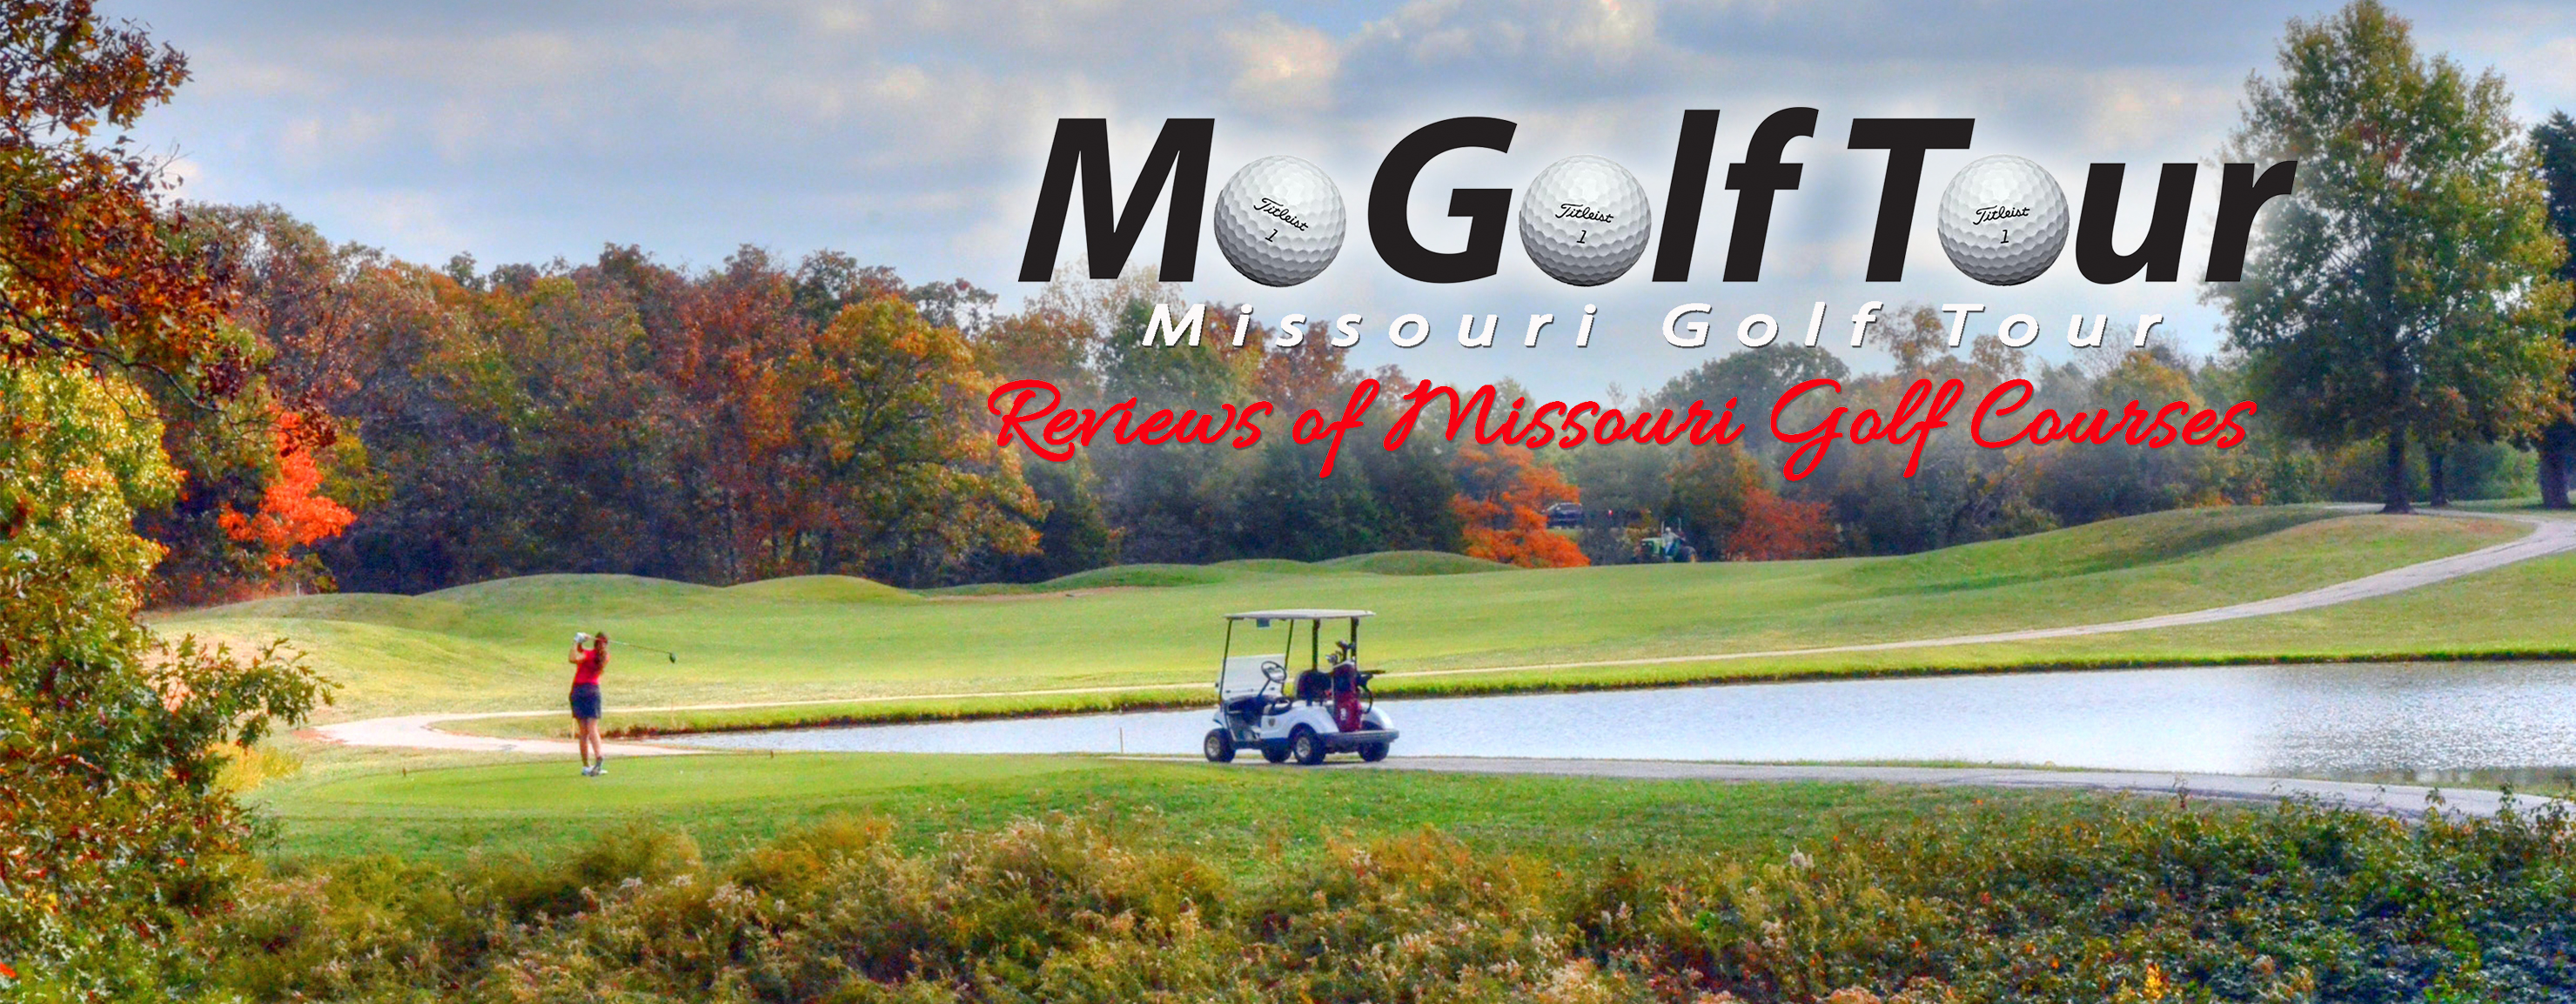 Missouri Golf Courses, Reviews of Missouri Golf Courses